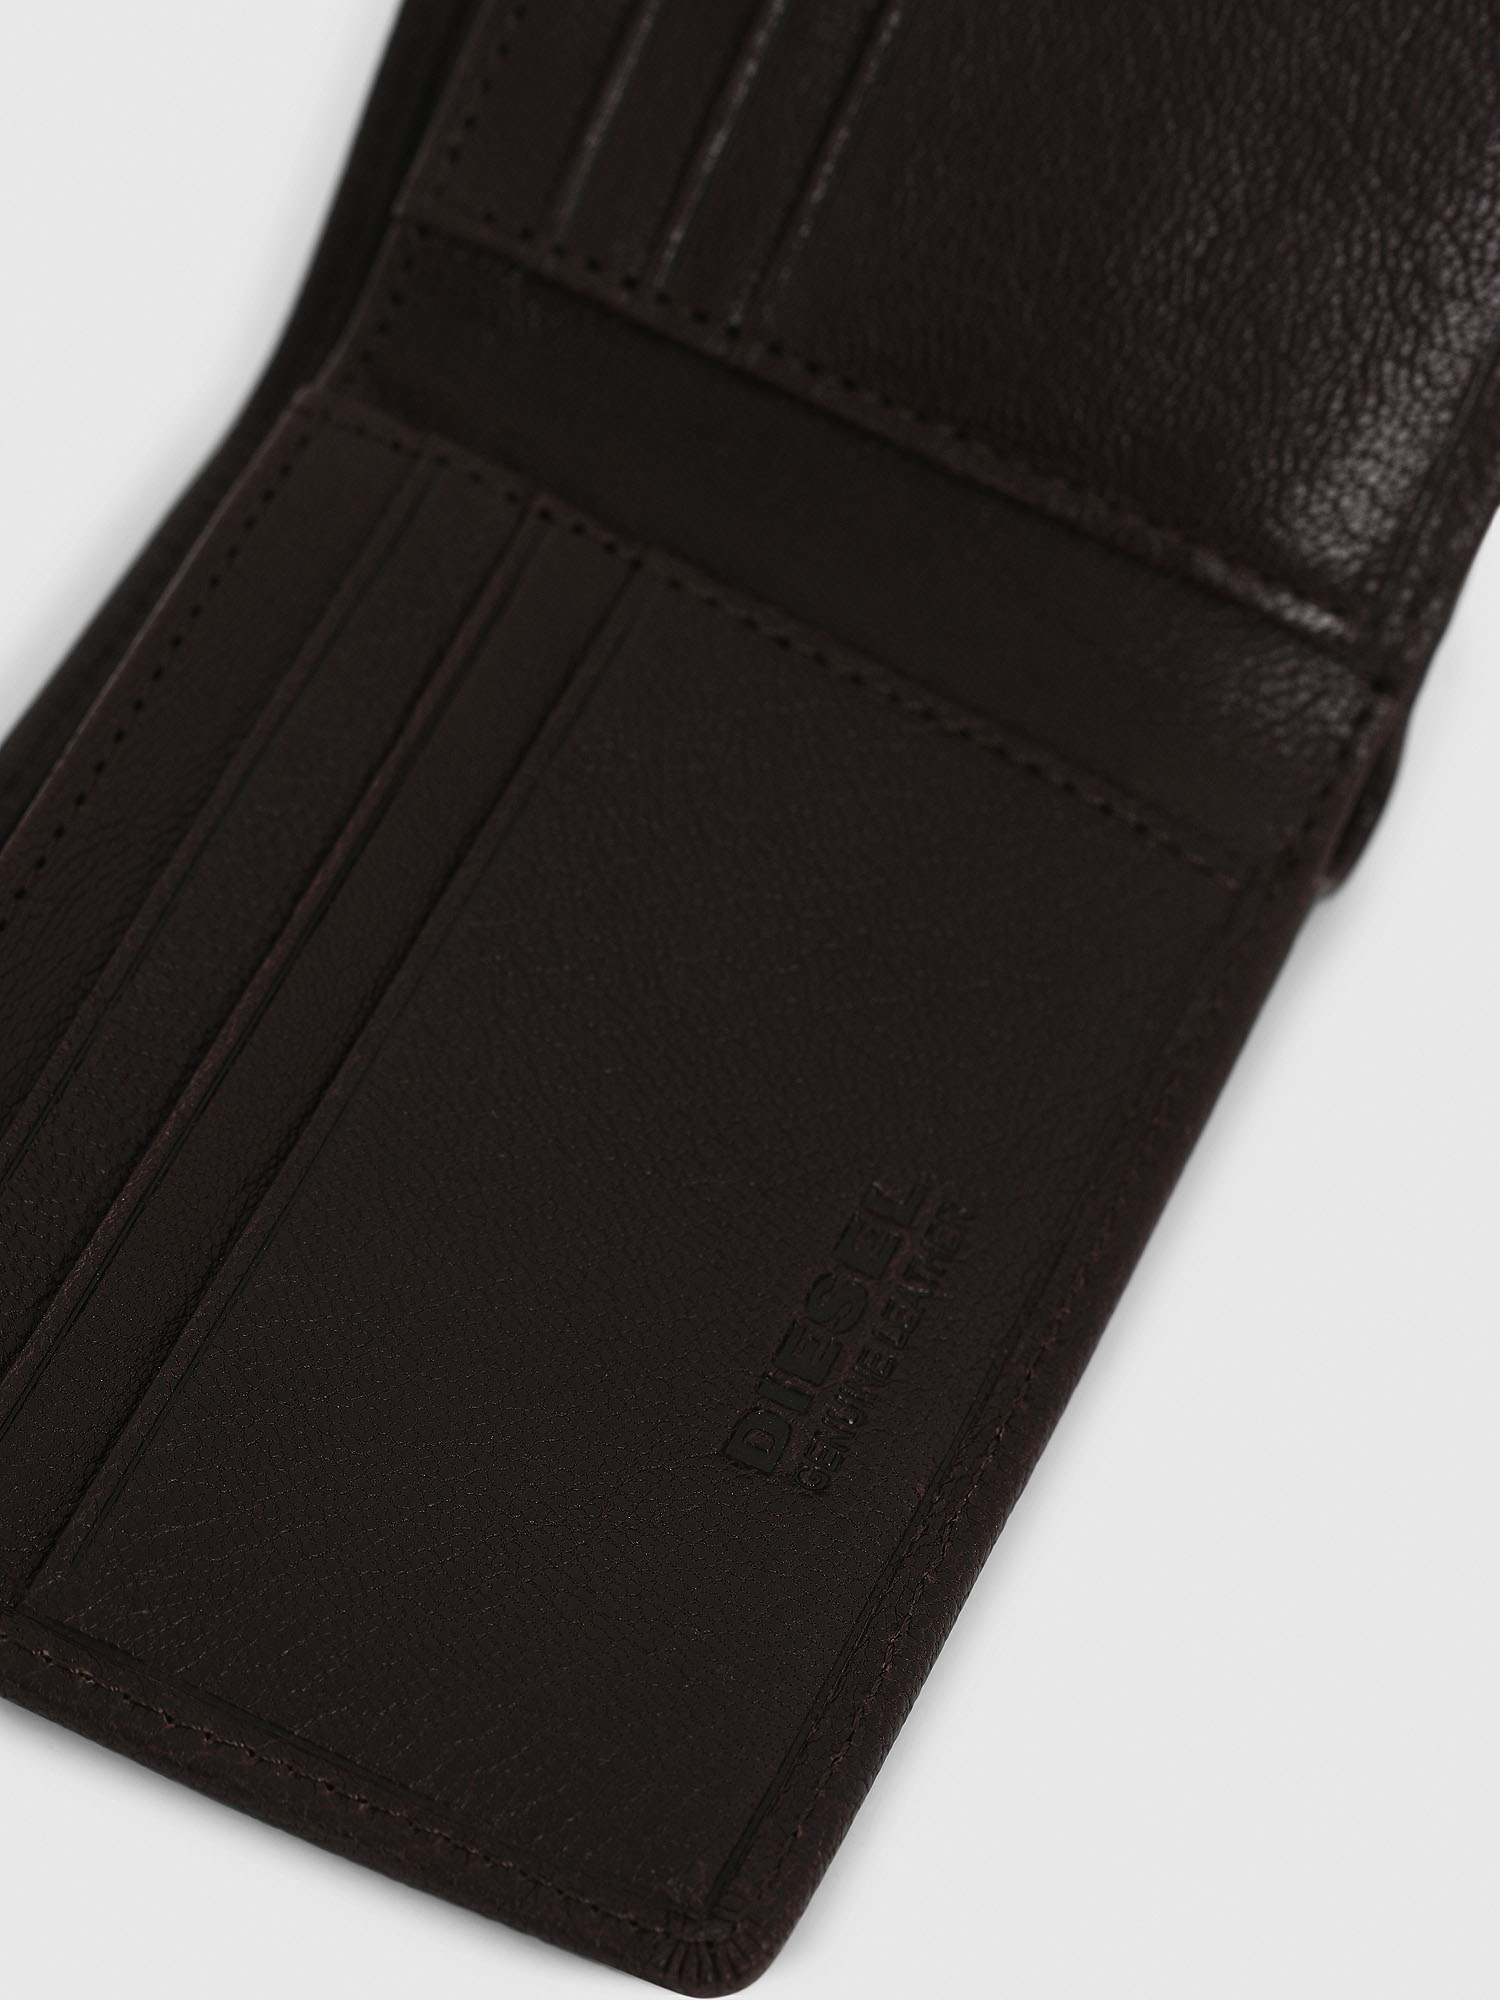 Diesel - NEELA XS,  - Small Wallets - Image 4